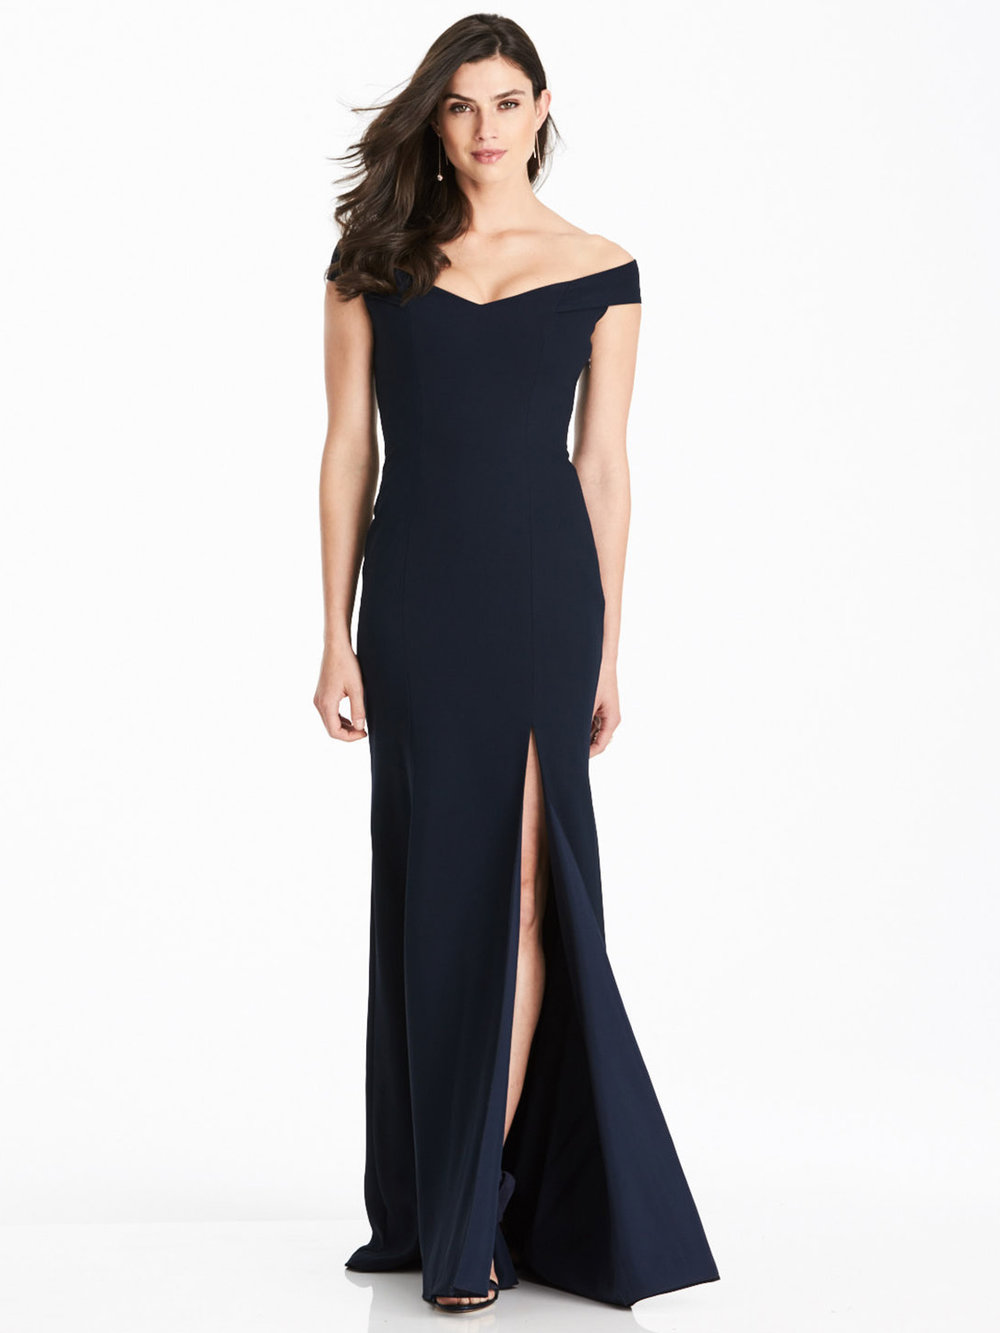 Best Selling Dessy Collection style 3012 in midnight navy crepe